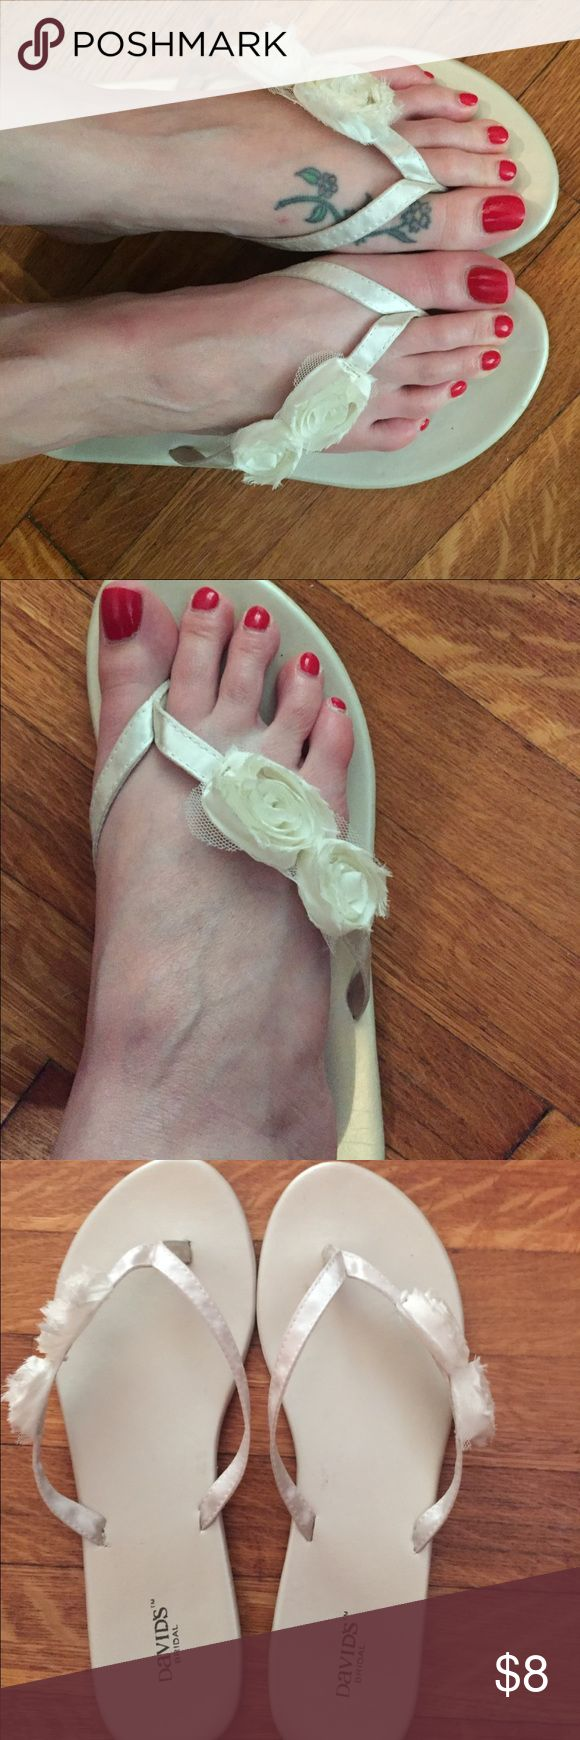 David's Bridal Wedding Flip Flops. Sz M  (7-8) Cute David's Bridal wedding flip flops. Size medium. Ivory. Worn once for maybe an hour (indoor only)  at my reception in November. Very comfy & easy to dance in! David's Bridal Shoes Sandals